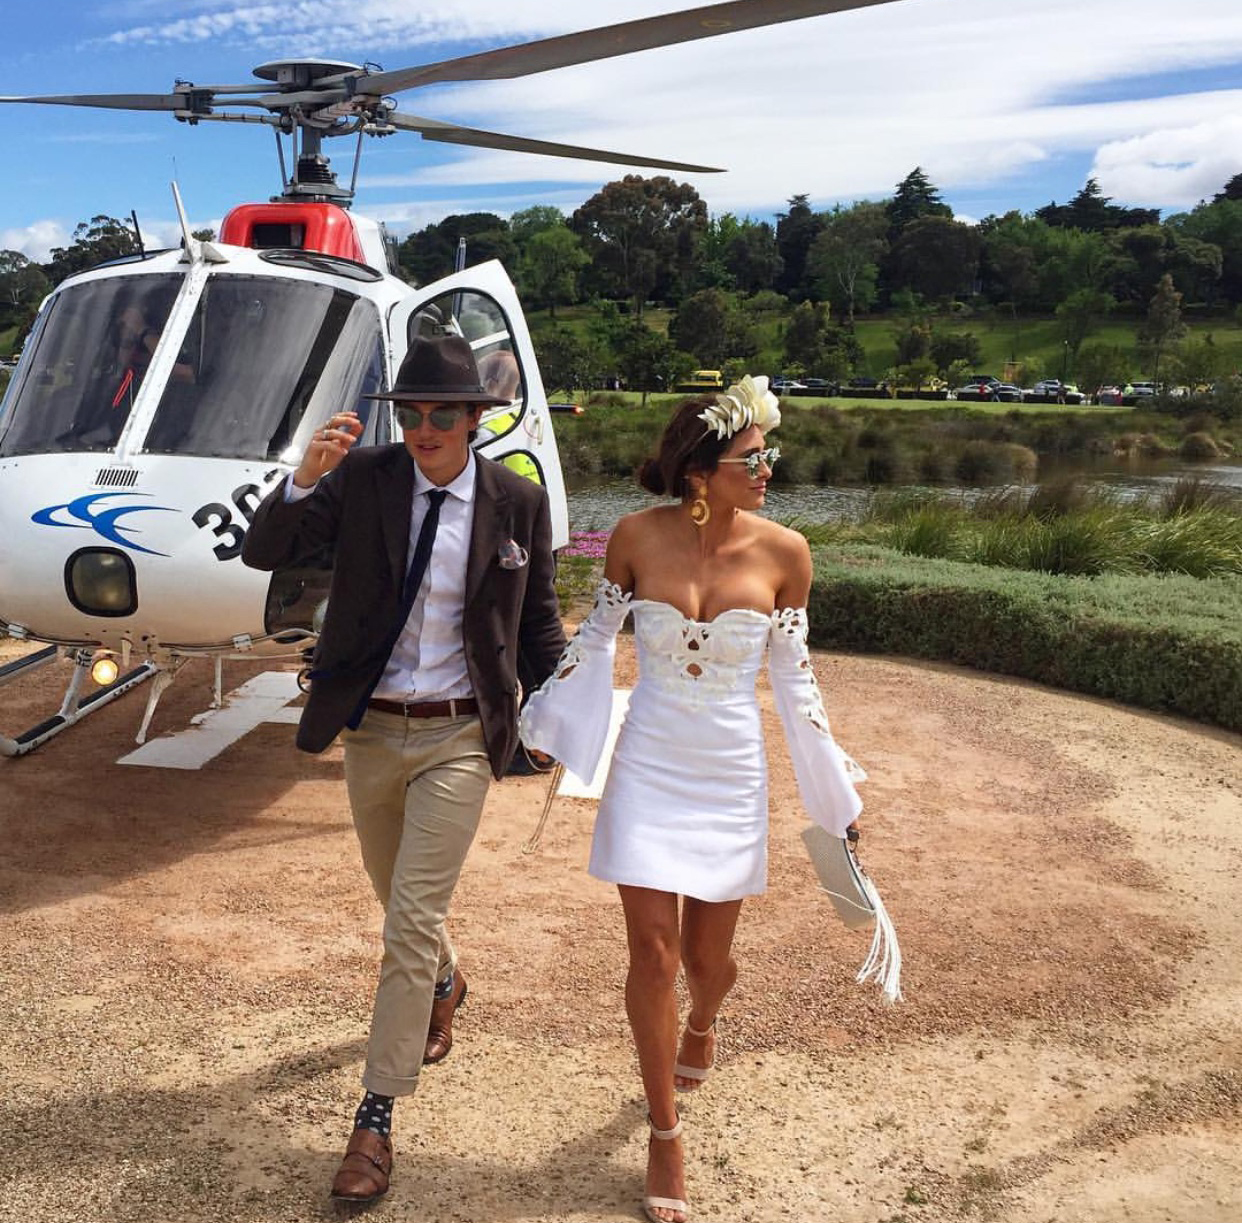 Winter Olympian Scotty James & Pro Surfer Ivy Miller - Melbourne Spring Racing Carnival